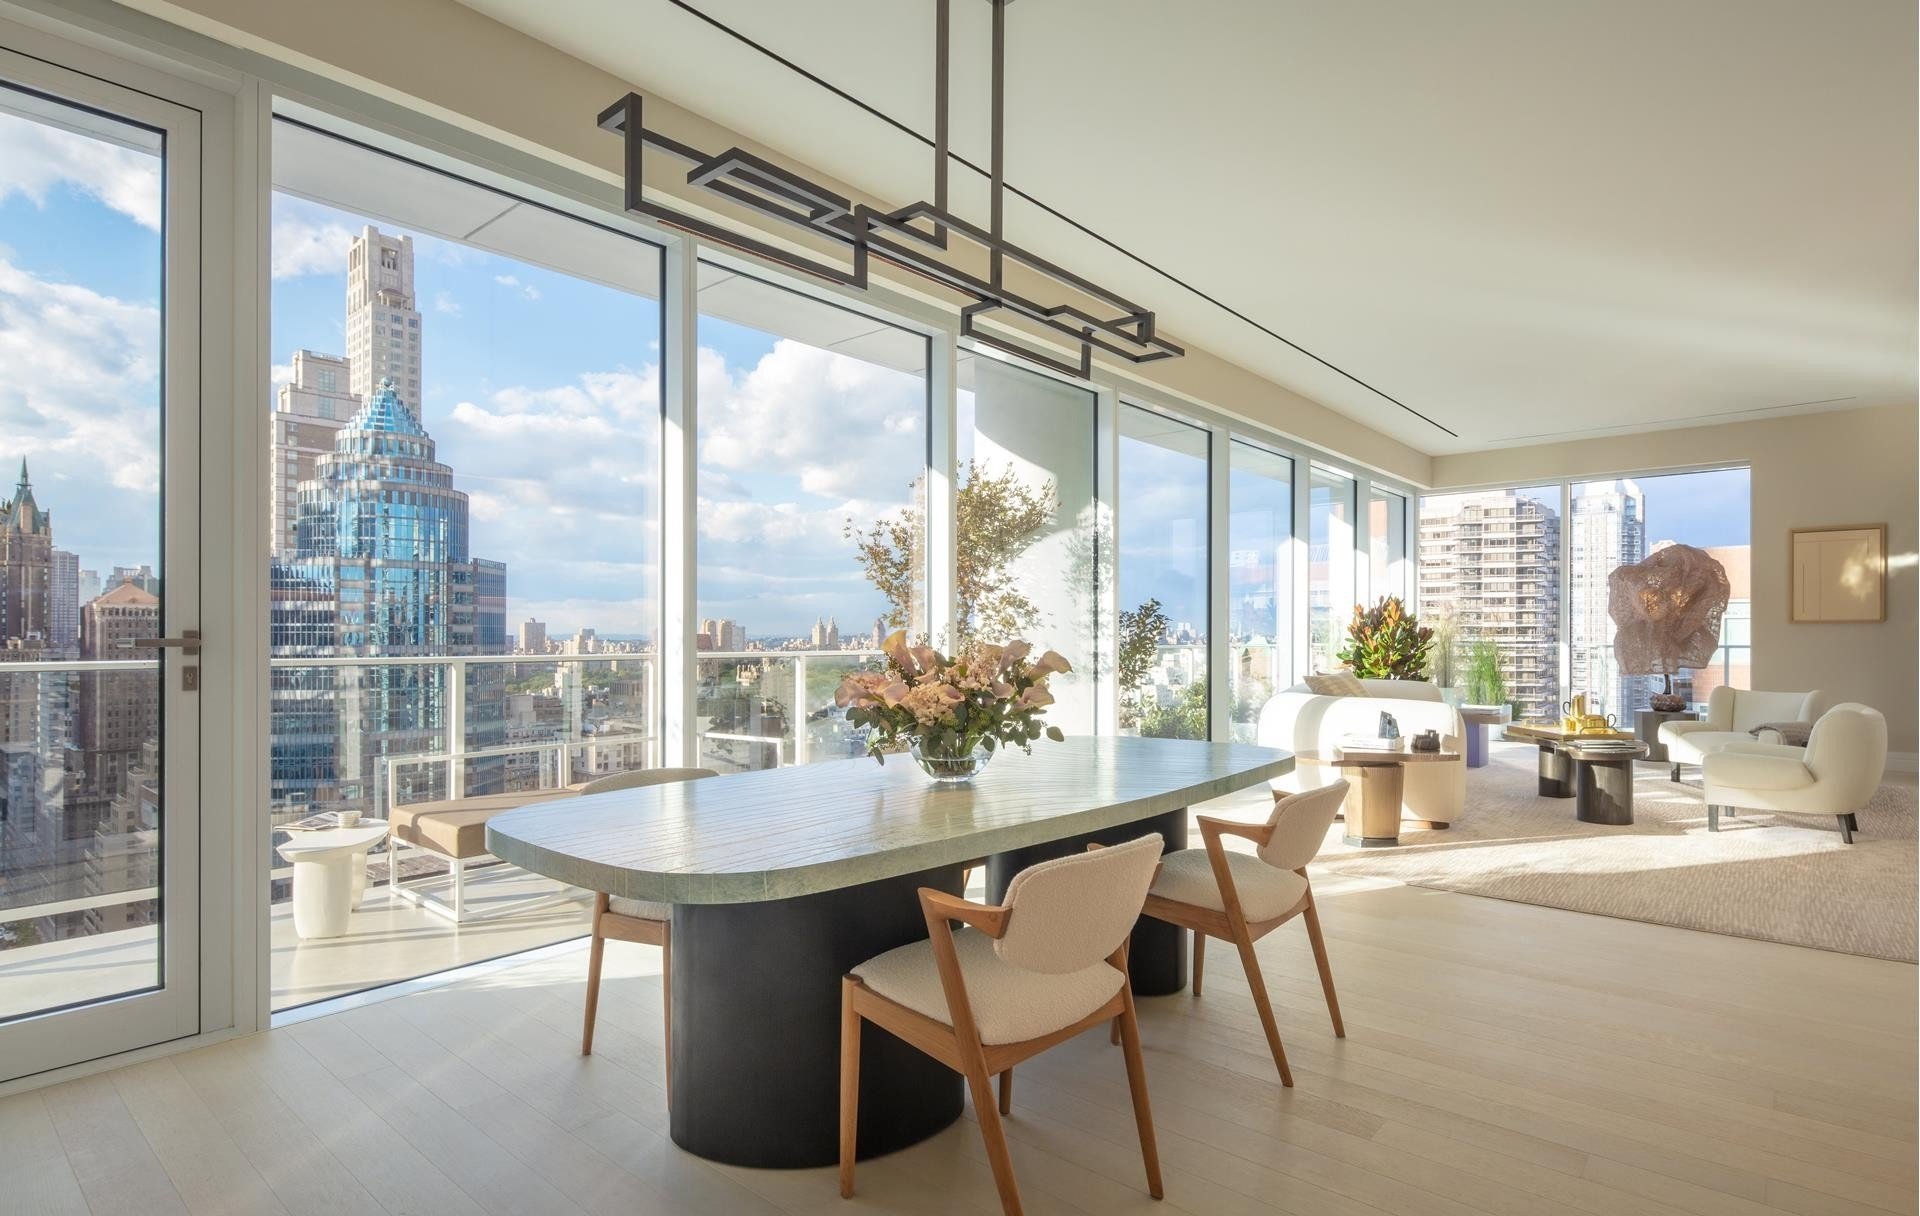 Property at 200 East 59th St, 19E Midtown Manhattan, New York, NY 10022